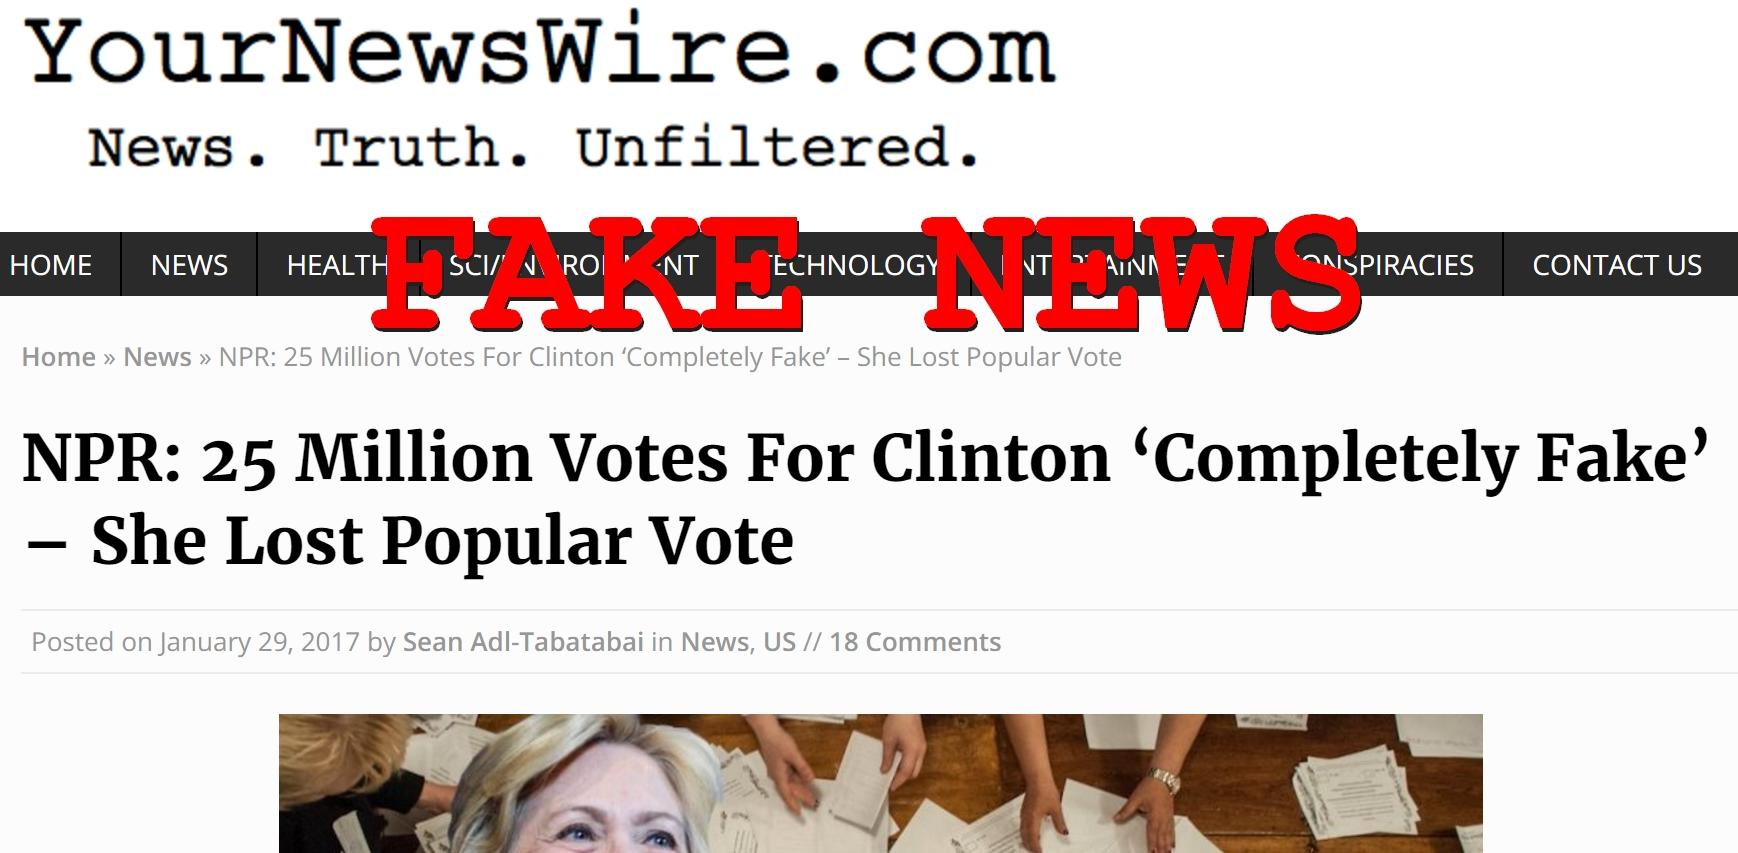 Fake News: NPR DID NOT Report 25 Million Votes For Clinton Are Completely Fake